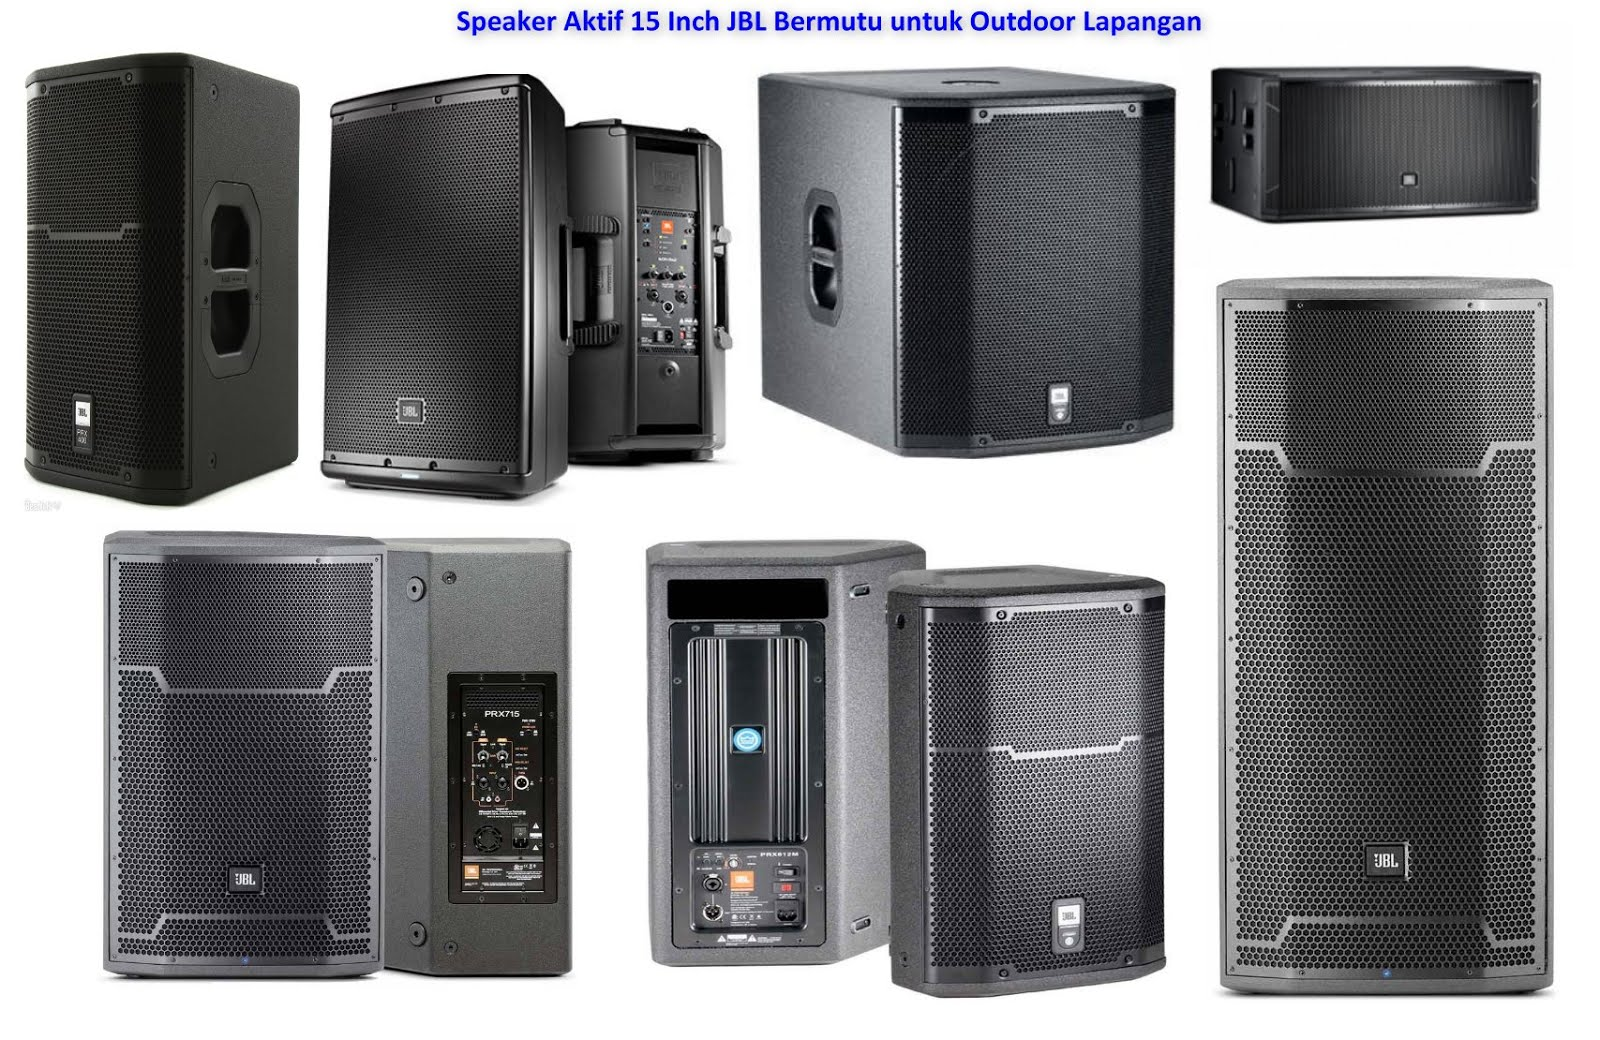 speaker gmc atau simbadda html with Harga Jbl 15inch on Harga Jbl 15inch as well